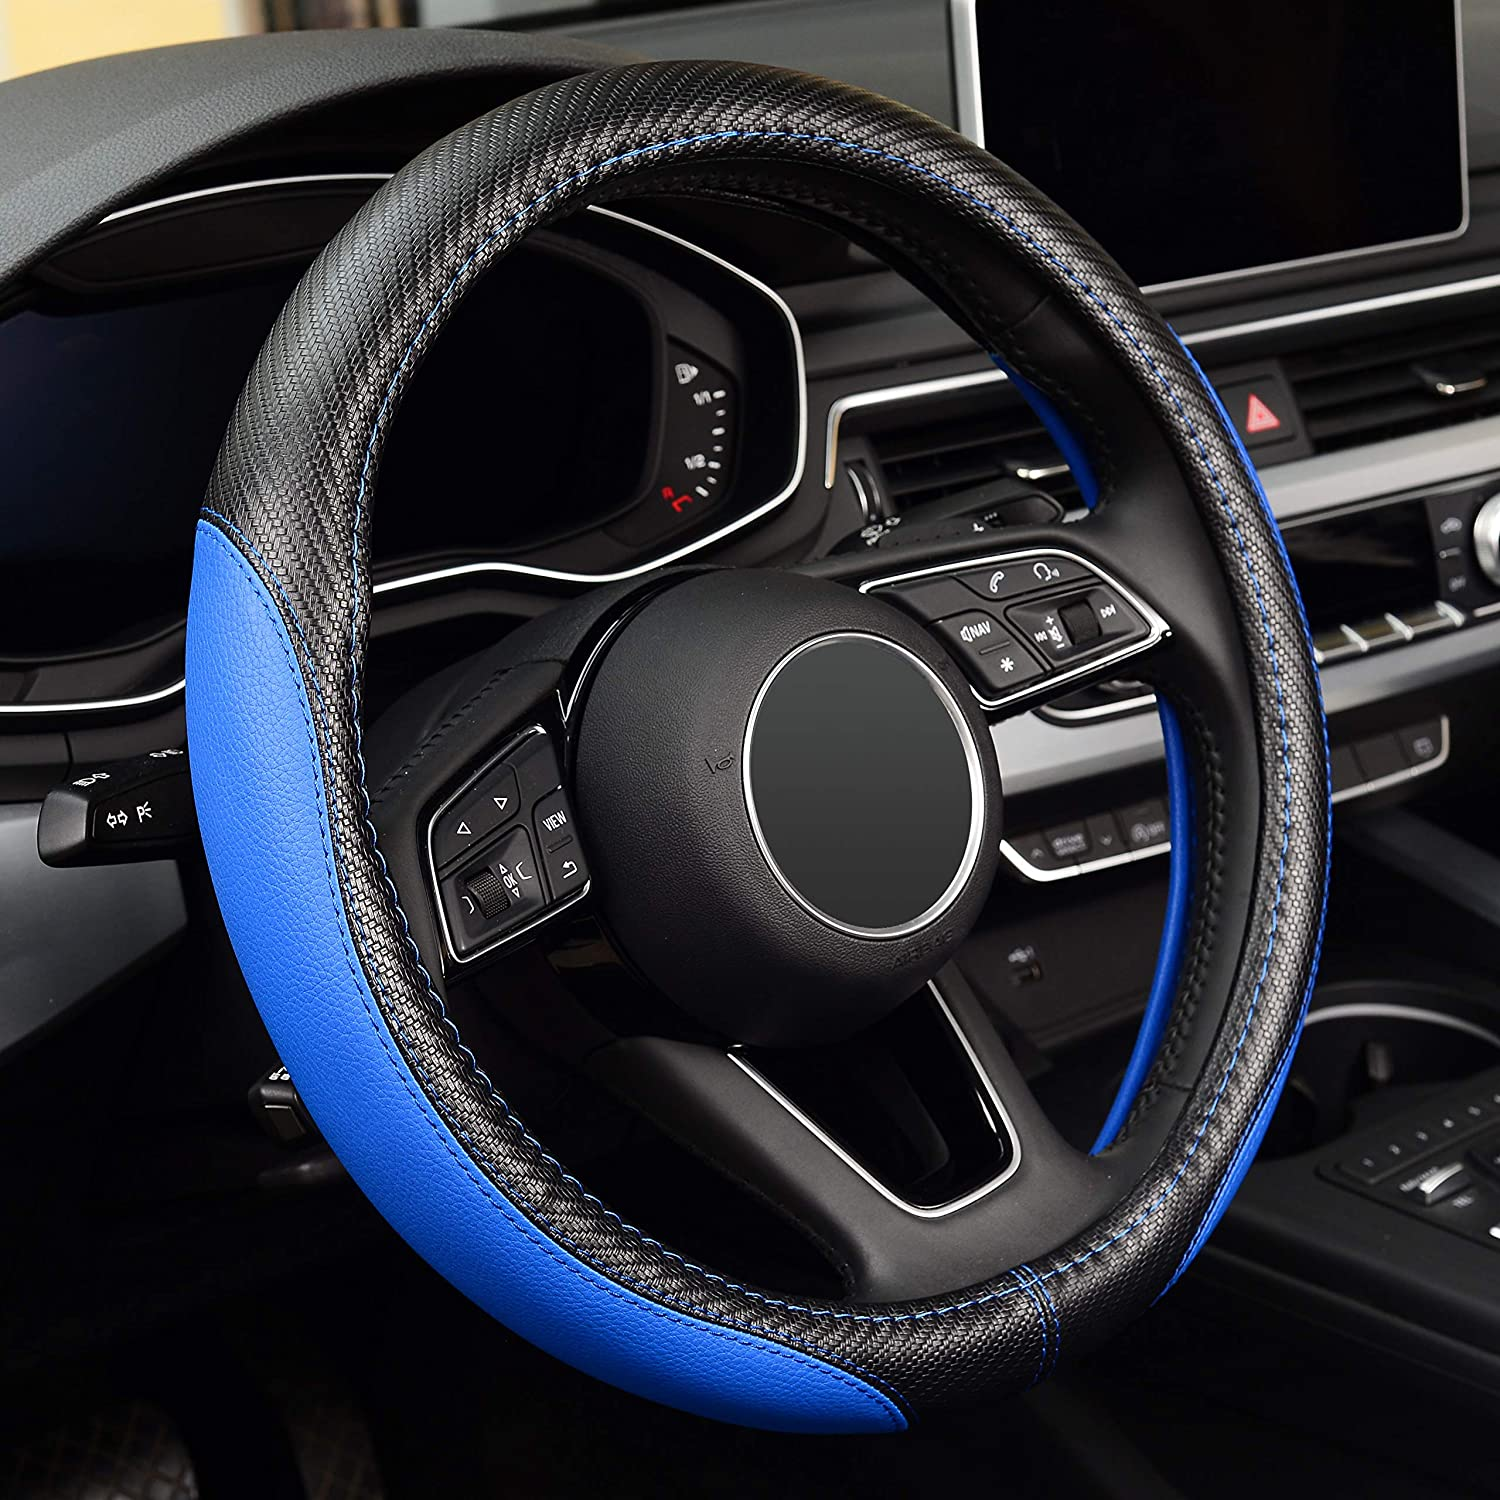 LABBYWAY Microfiber Leather Auto Cheap mail order specialty store Car Univer Wheel Cover Steering New Orleans Mall